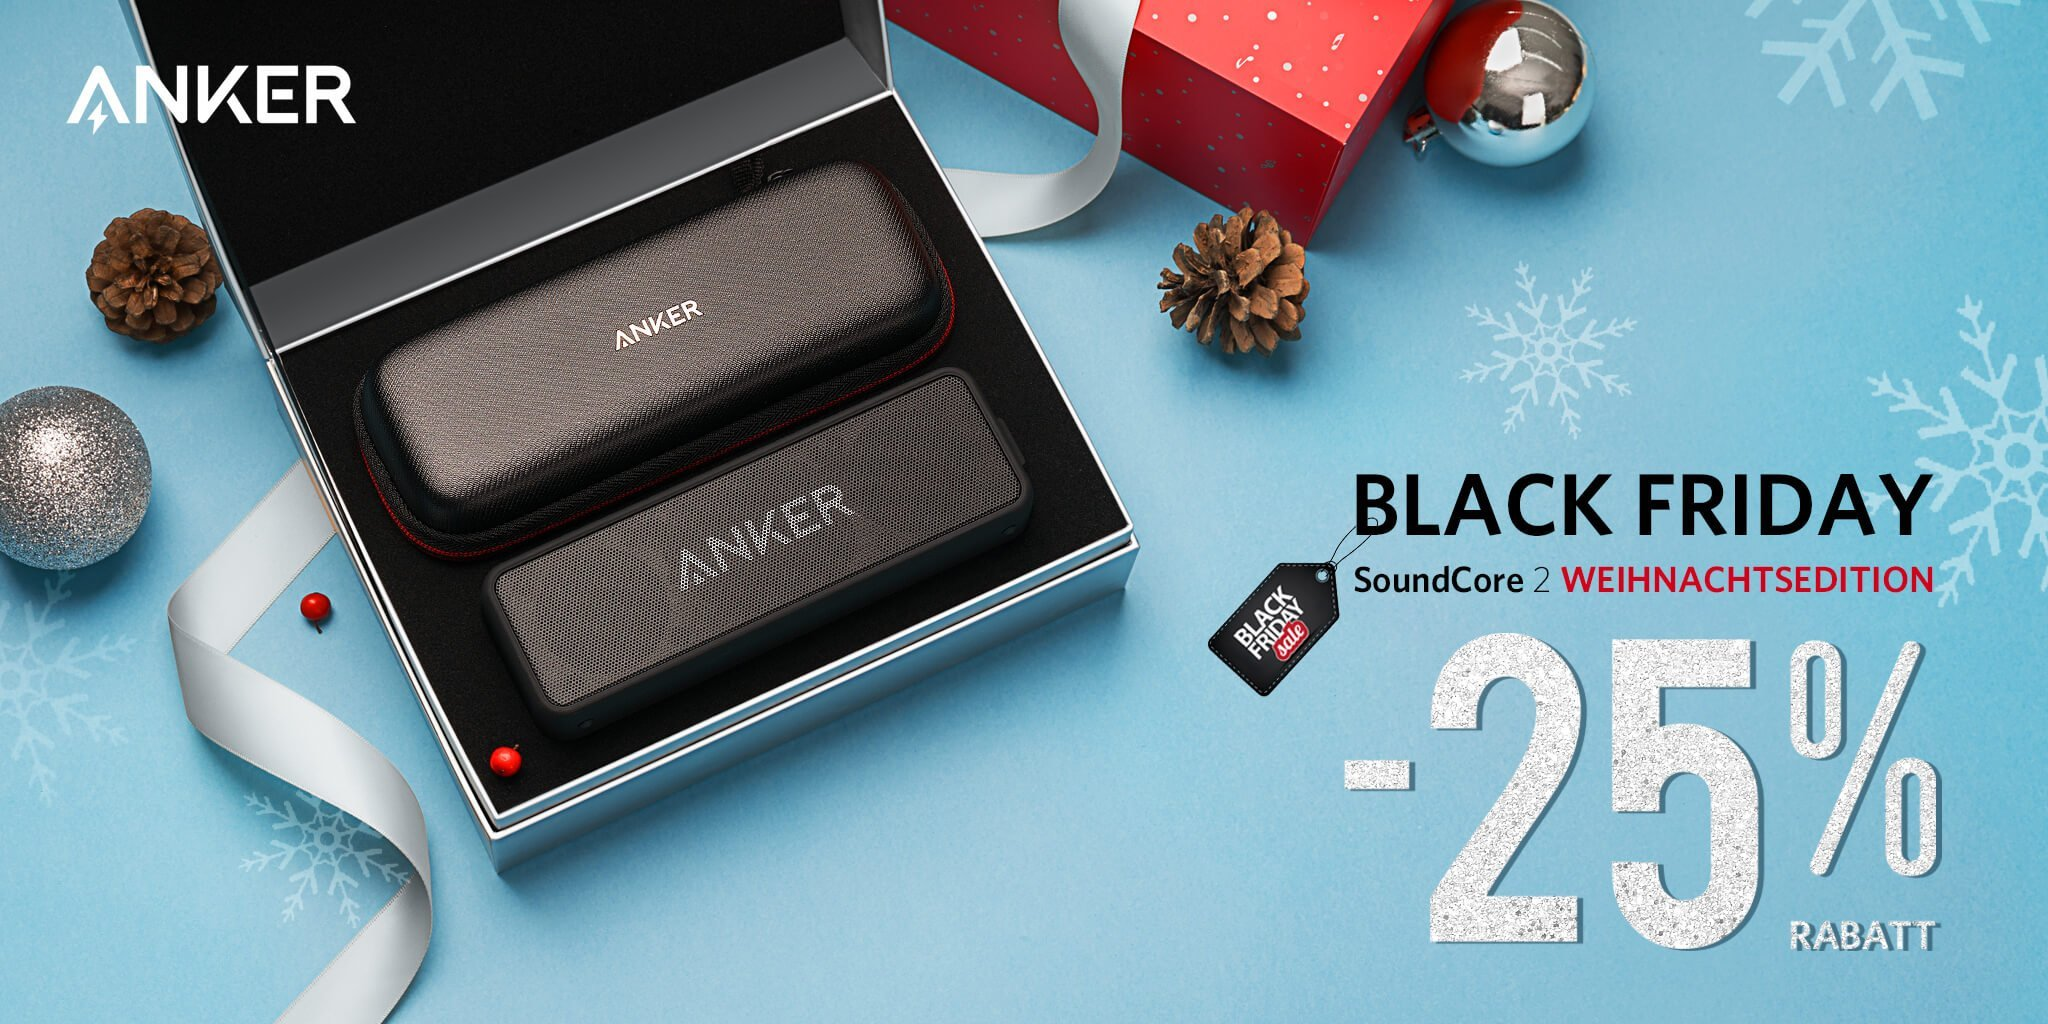 Anker Aktion: SoundCore 2 Special Weihnachtsedition 25% billiger! 1